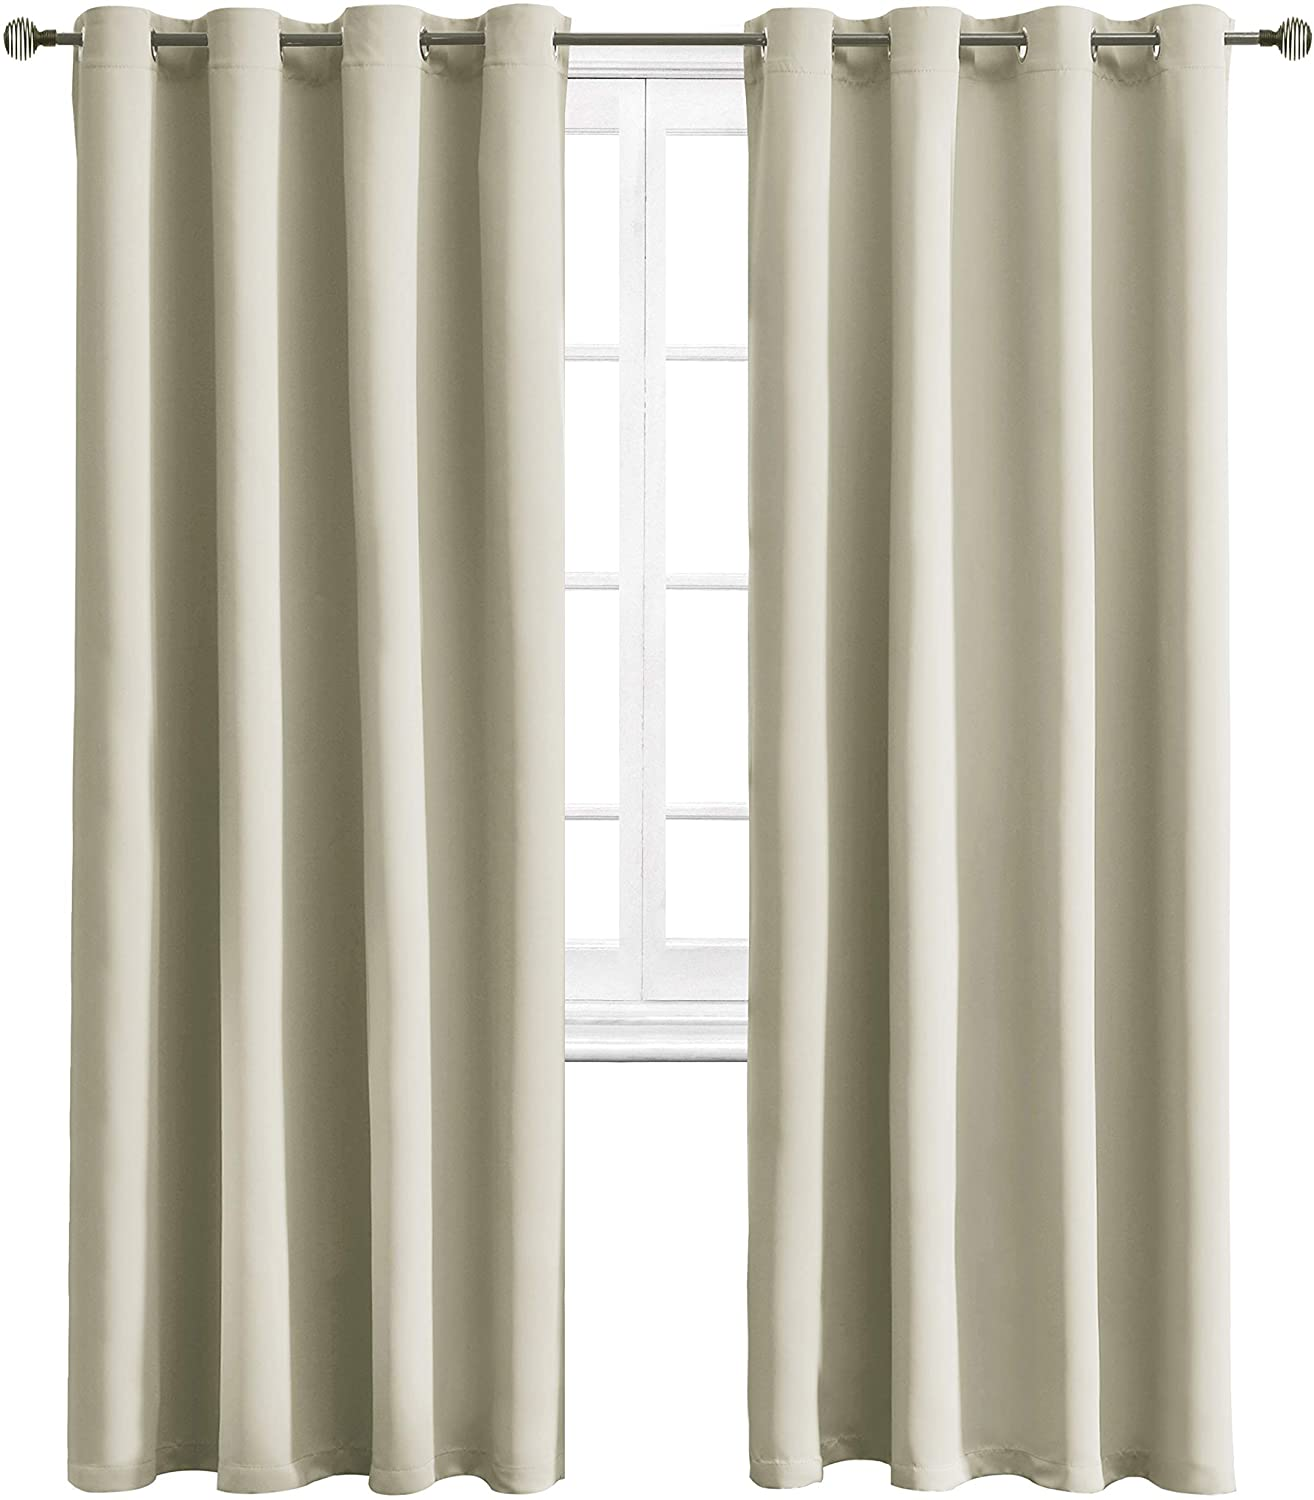 WONTEX Blackout Curtains Room Darkening Thermal Insulated with Grommet Curtains for Living Room, 52 x 84 inch, Light Beige, 2 Panels